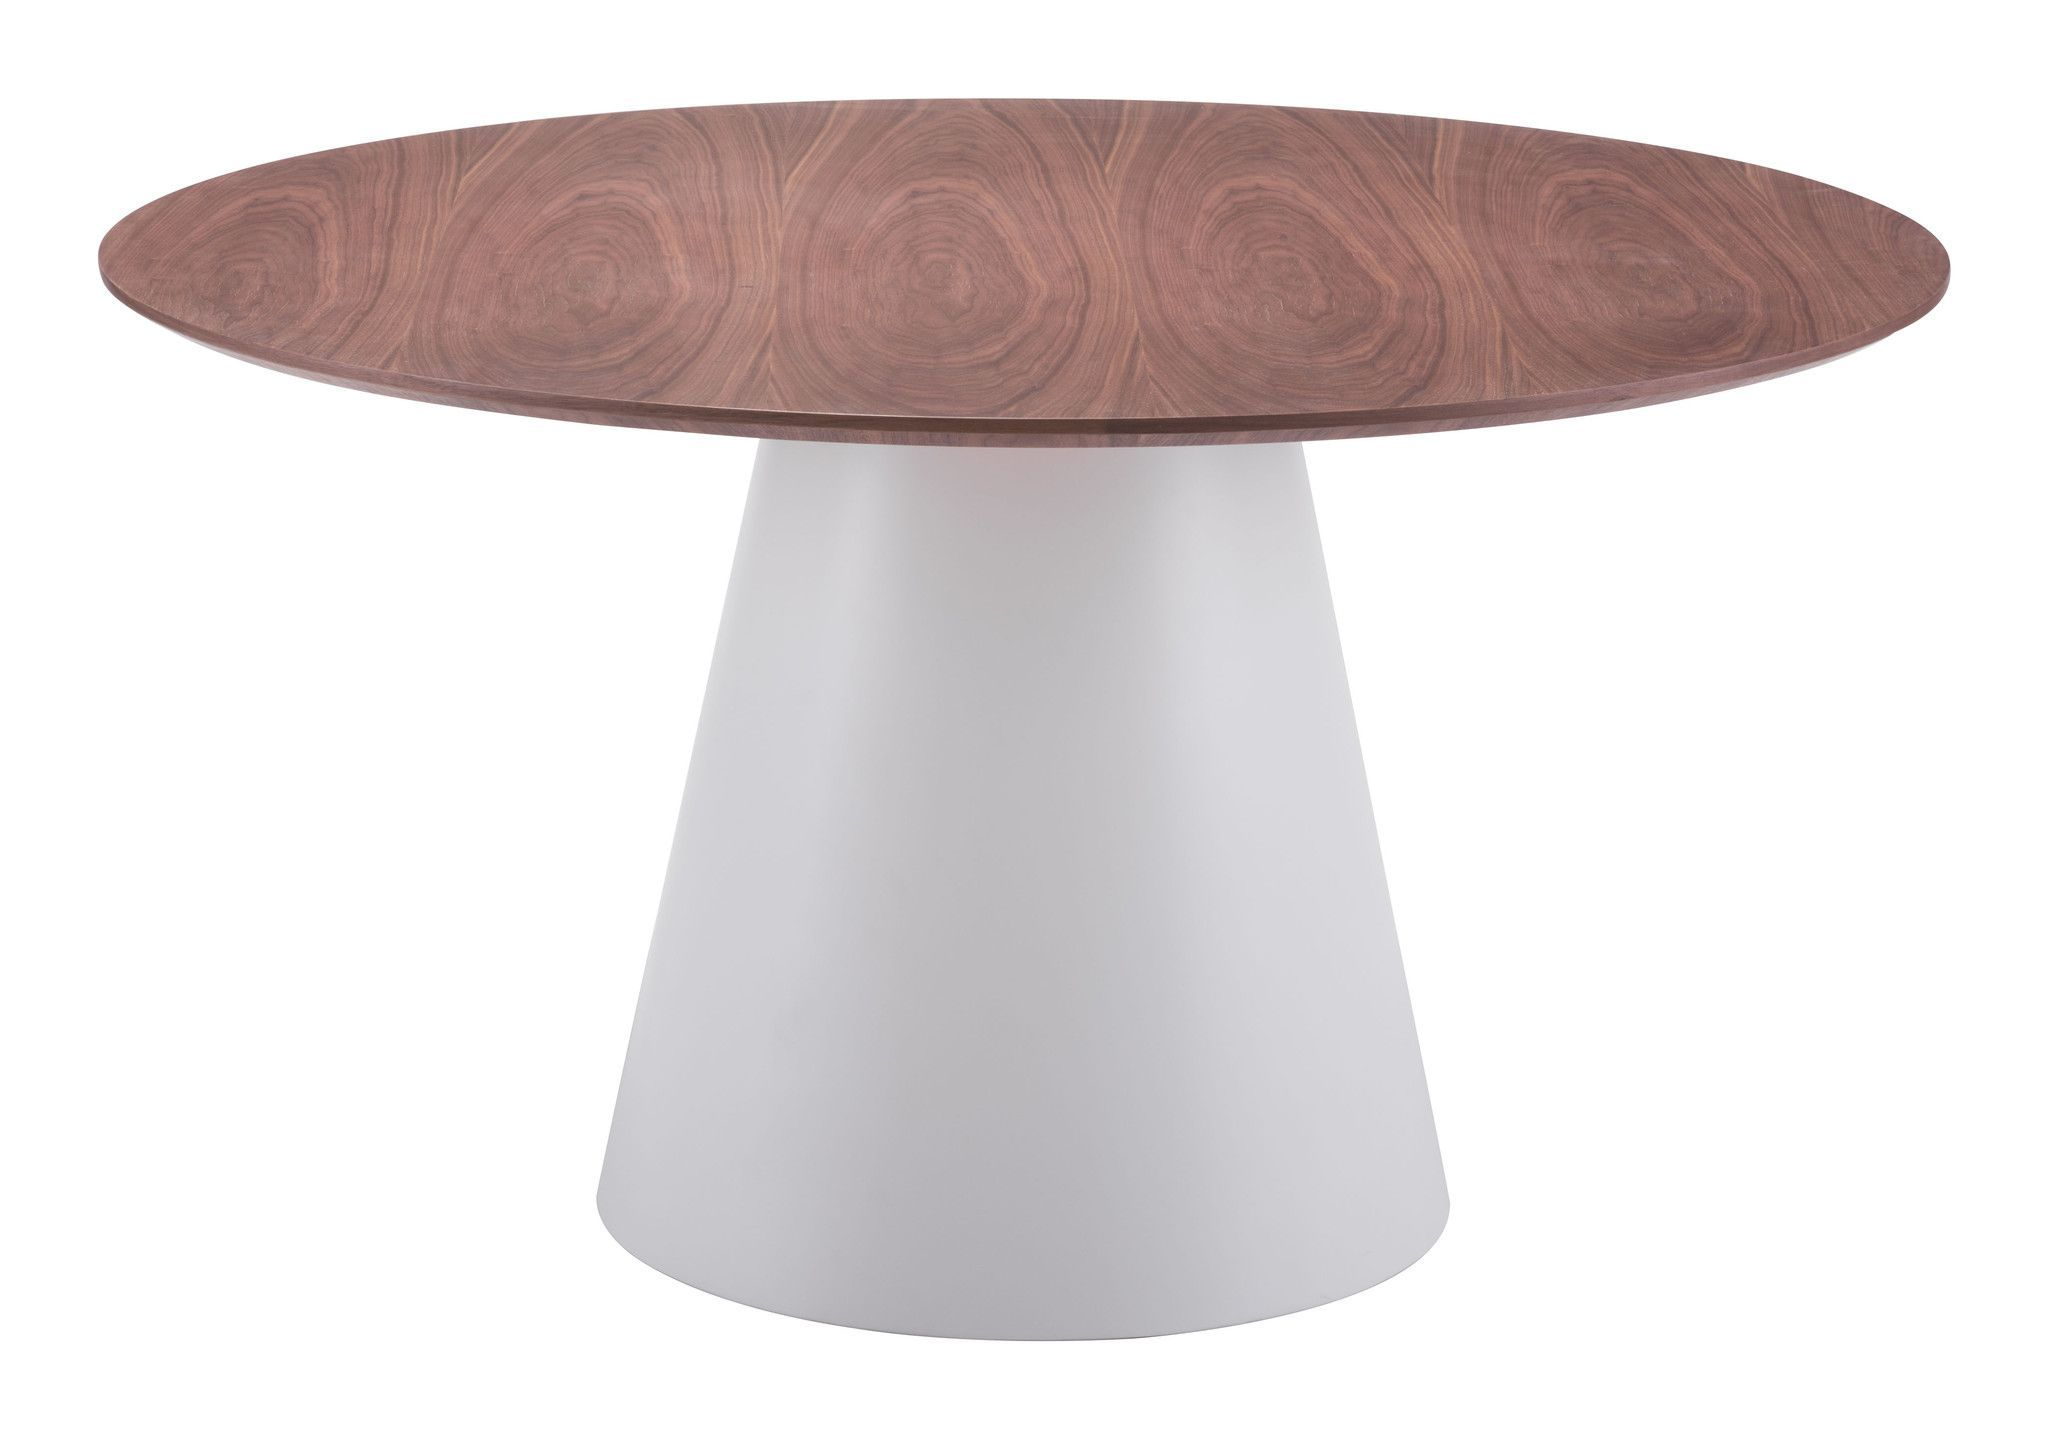 Quiescent Dining Table White Walnut Dining Table Round Dining Table Modern Round Dining Table [ 1441 x 2048 Pixel ]